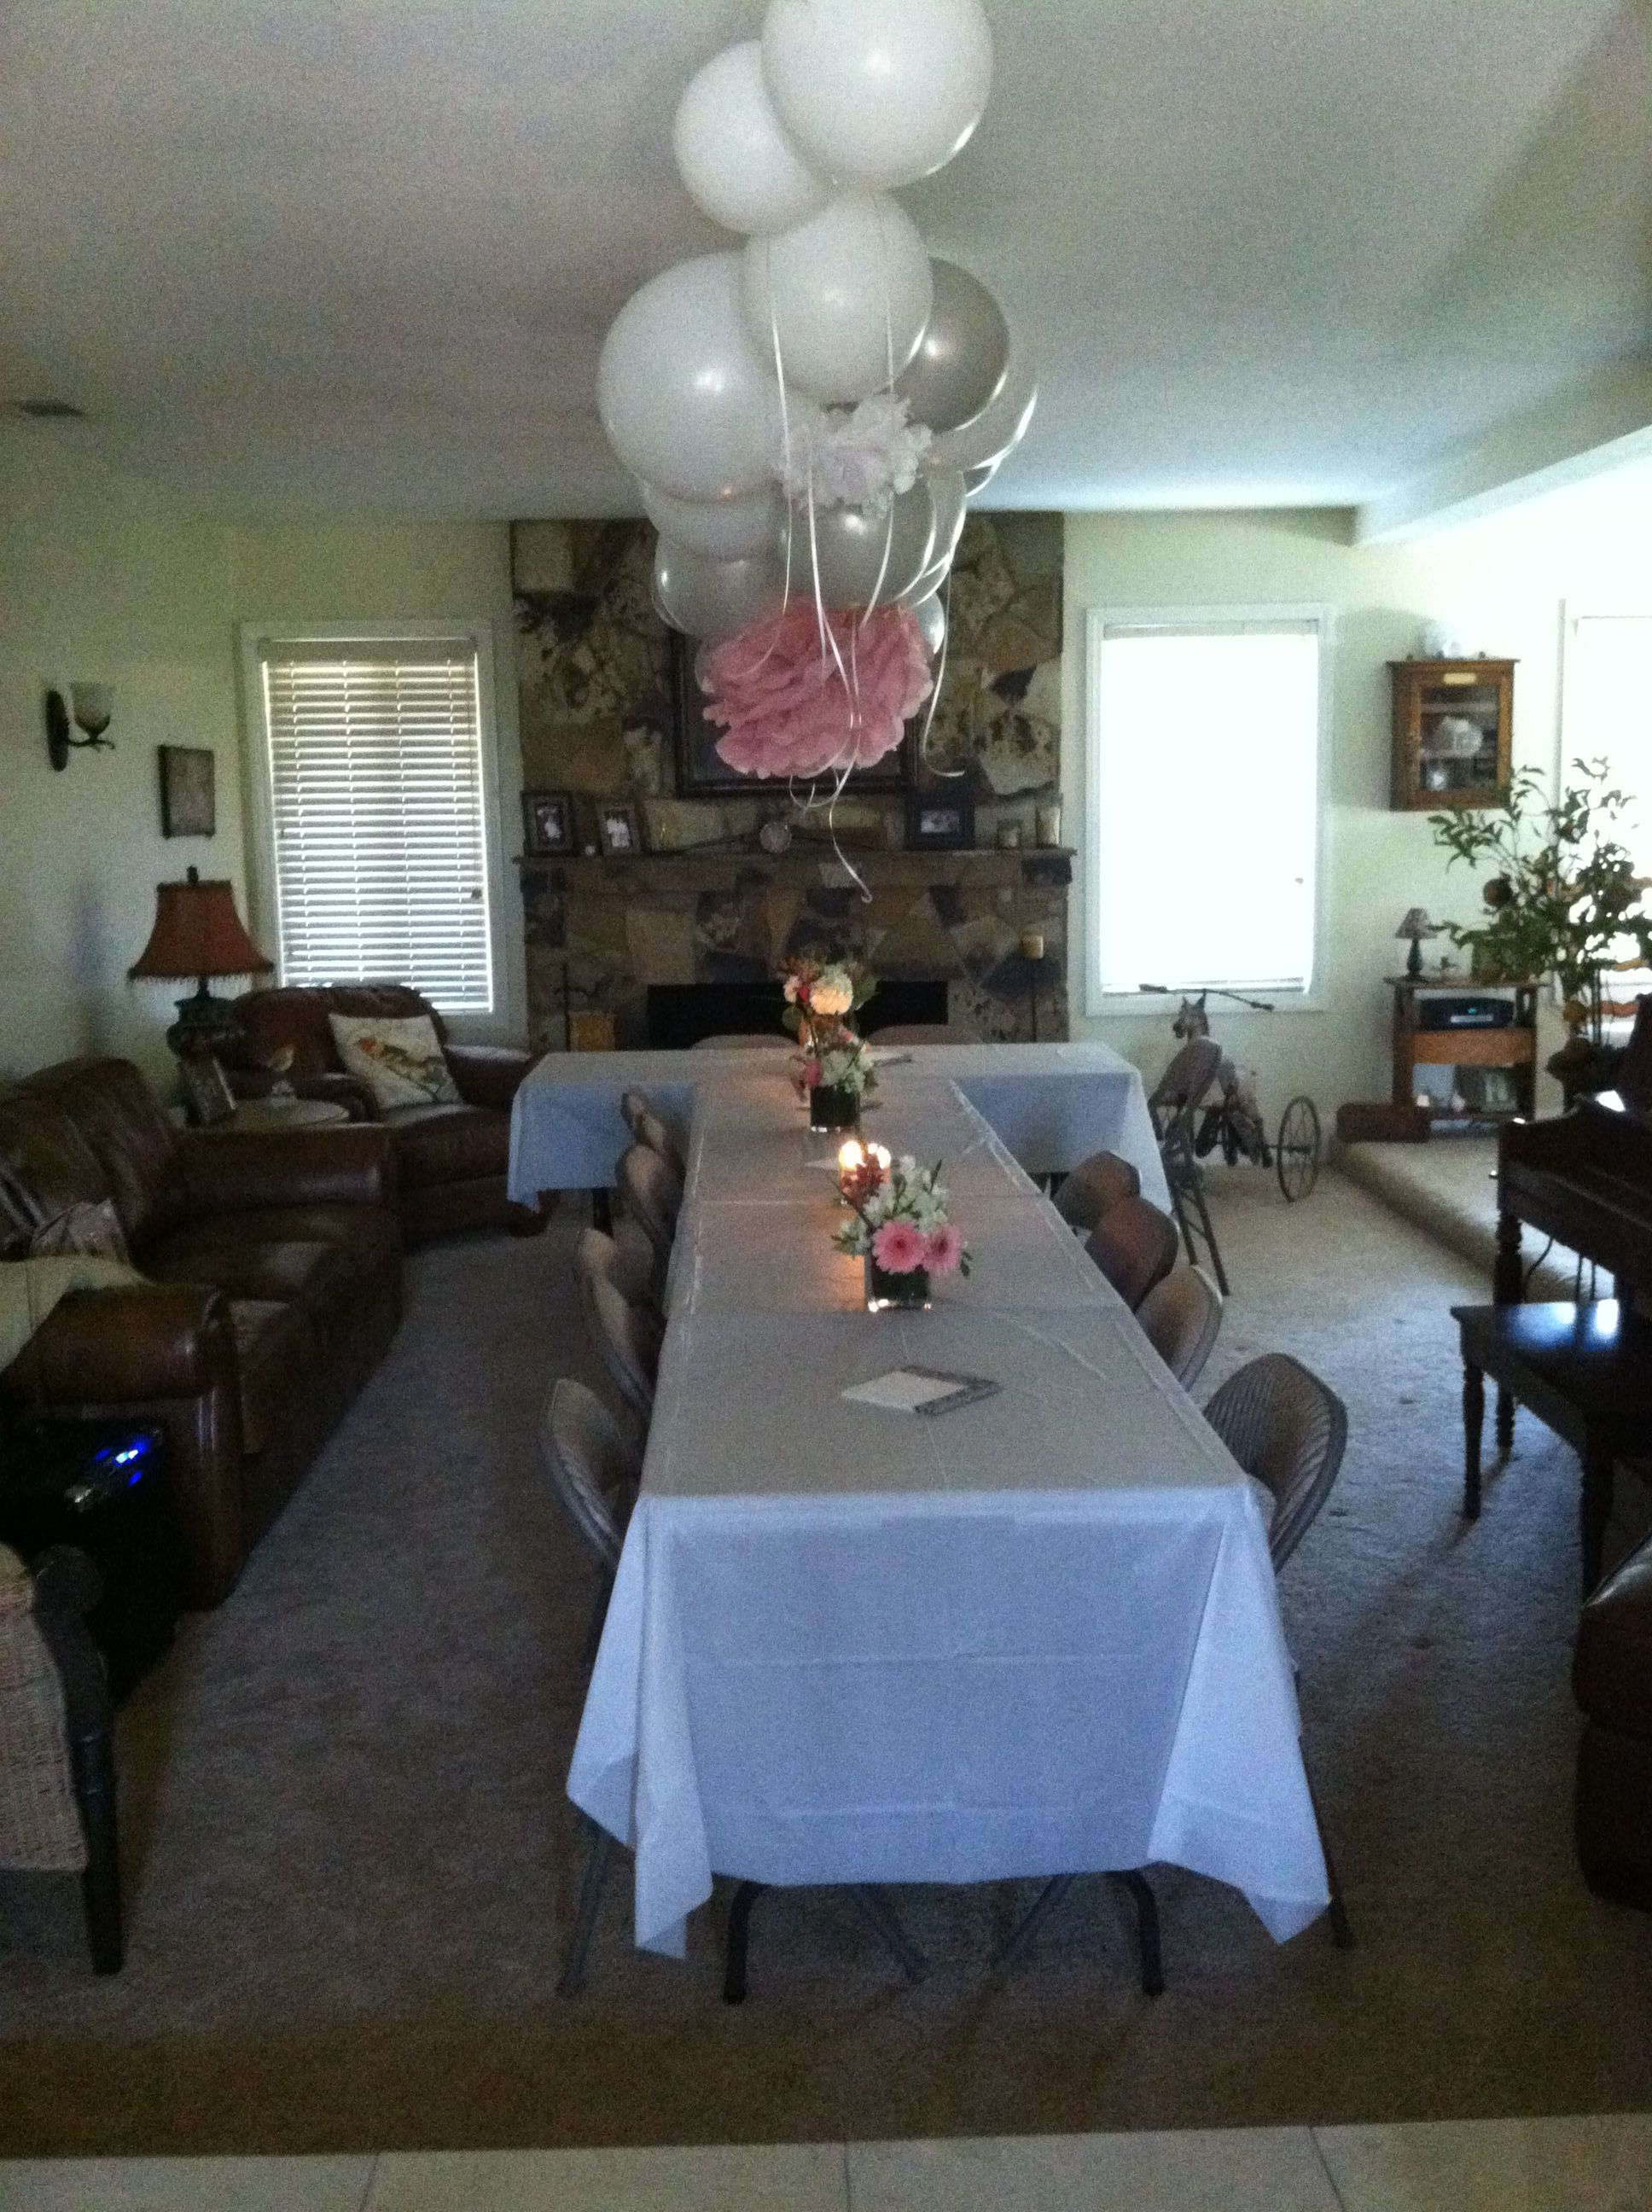 My Parents Surprise Anniversary Party Decor We Set Up The 3 Dinner Tables In A Large Living Room We Were Able To Fit Living Room Sets Room Set Party Seating